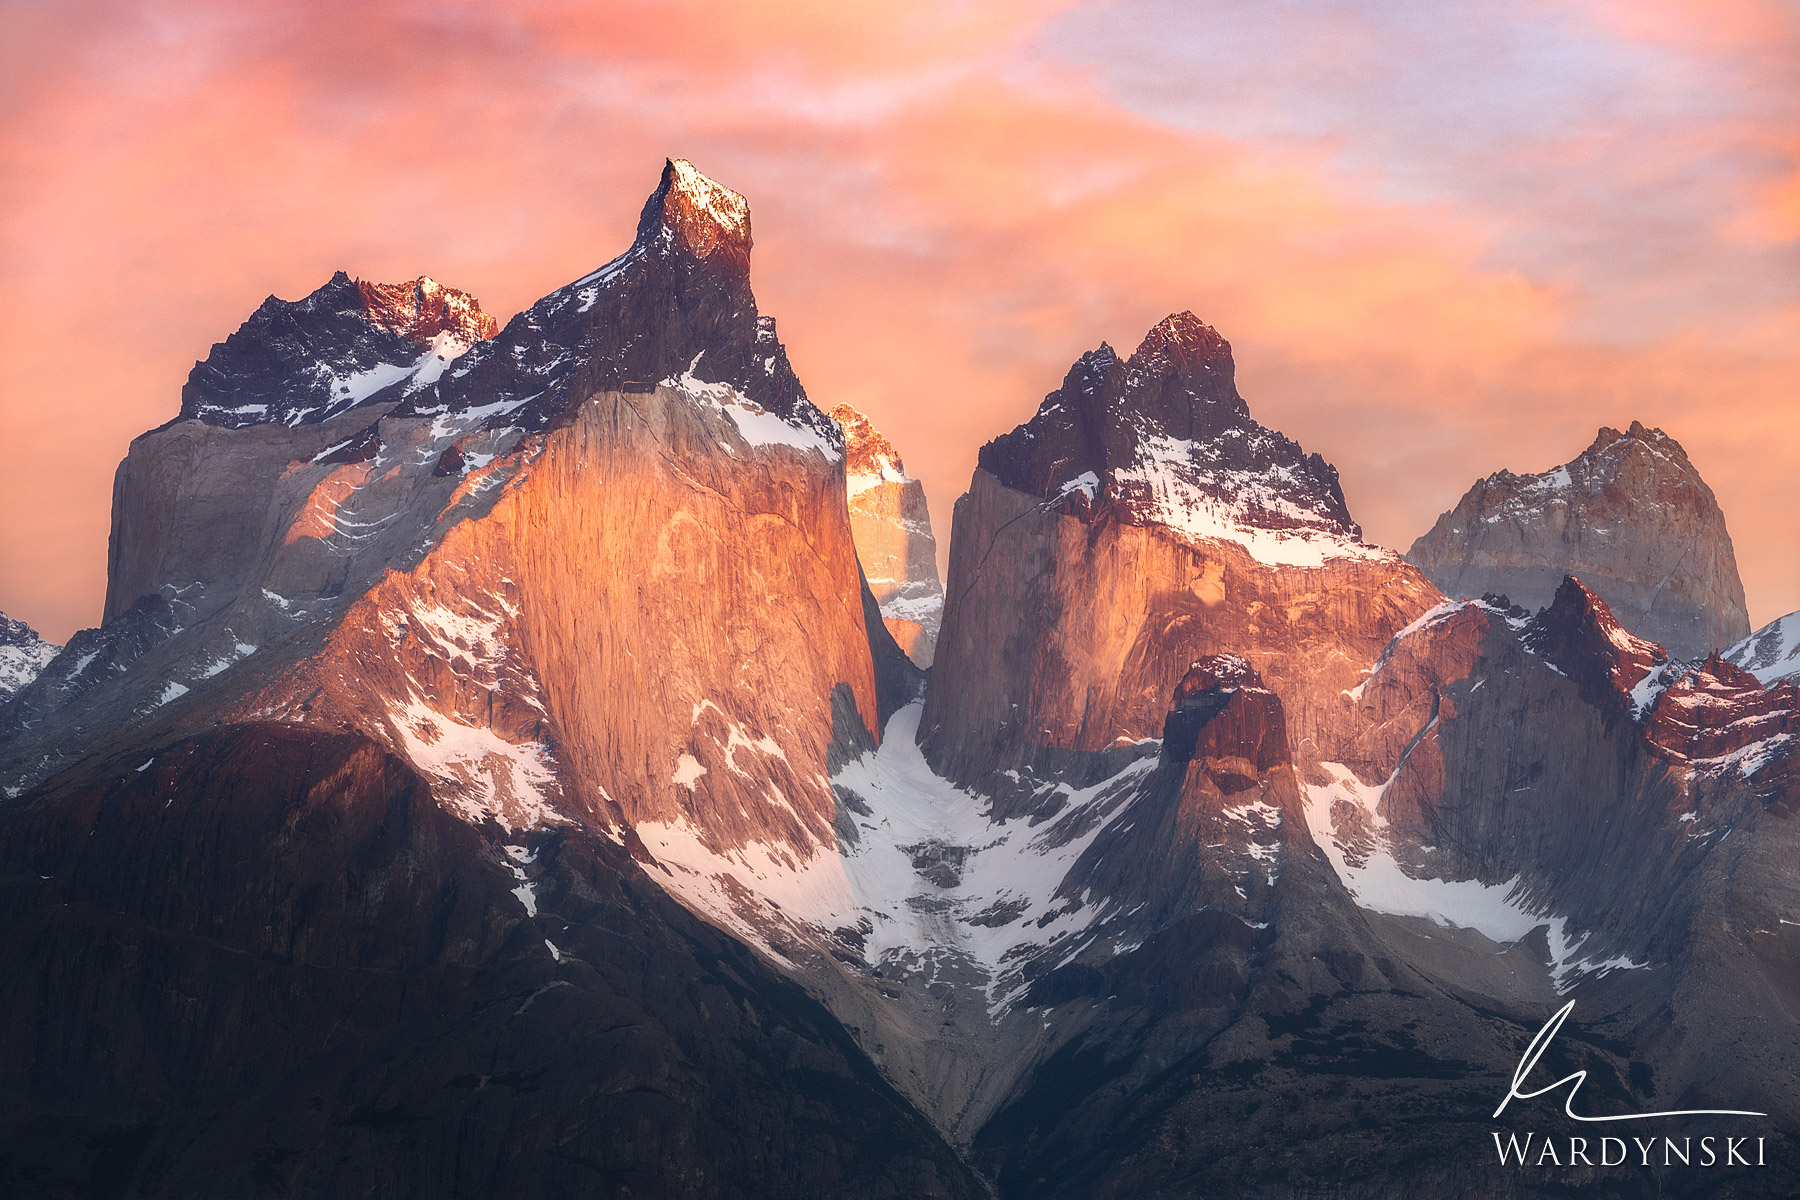 Fine Art Print | Limited Edition of 100  The Paine Massif is a collection of beautifully irregular peaks in Patagonia. The three...